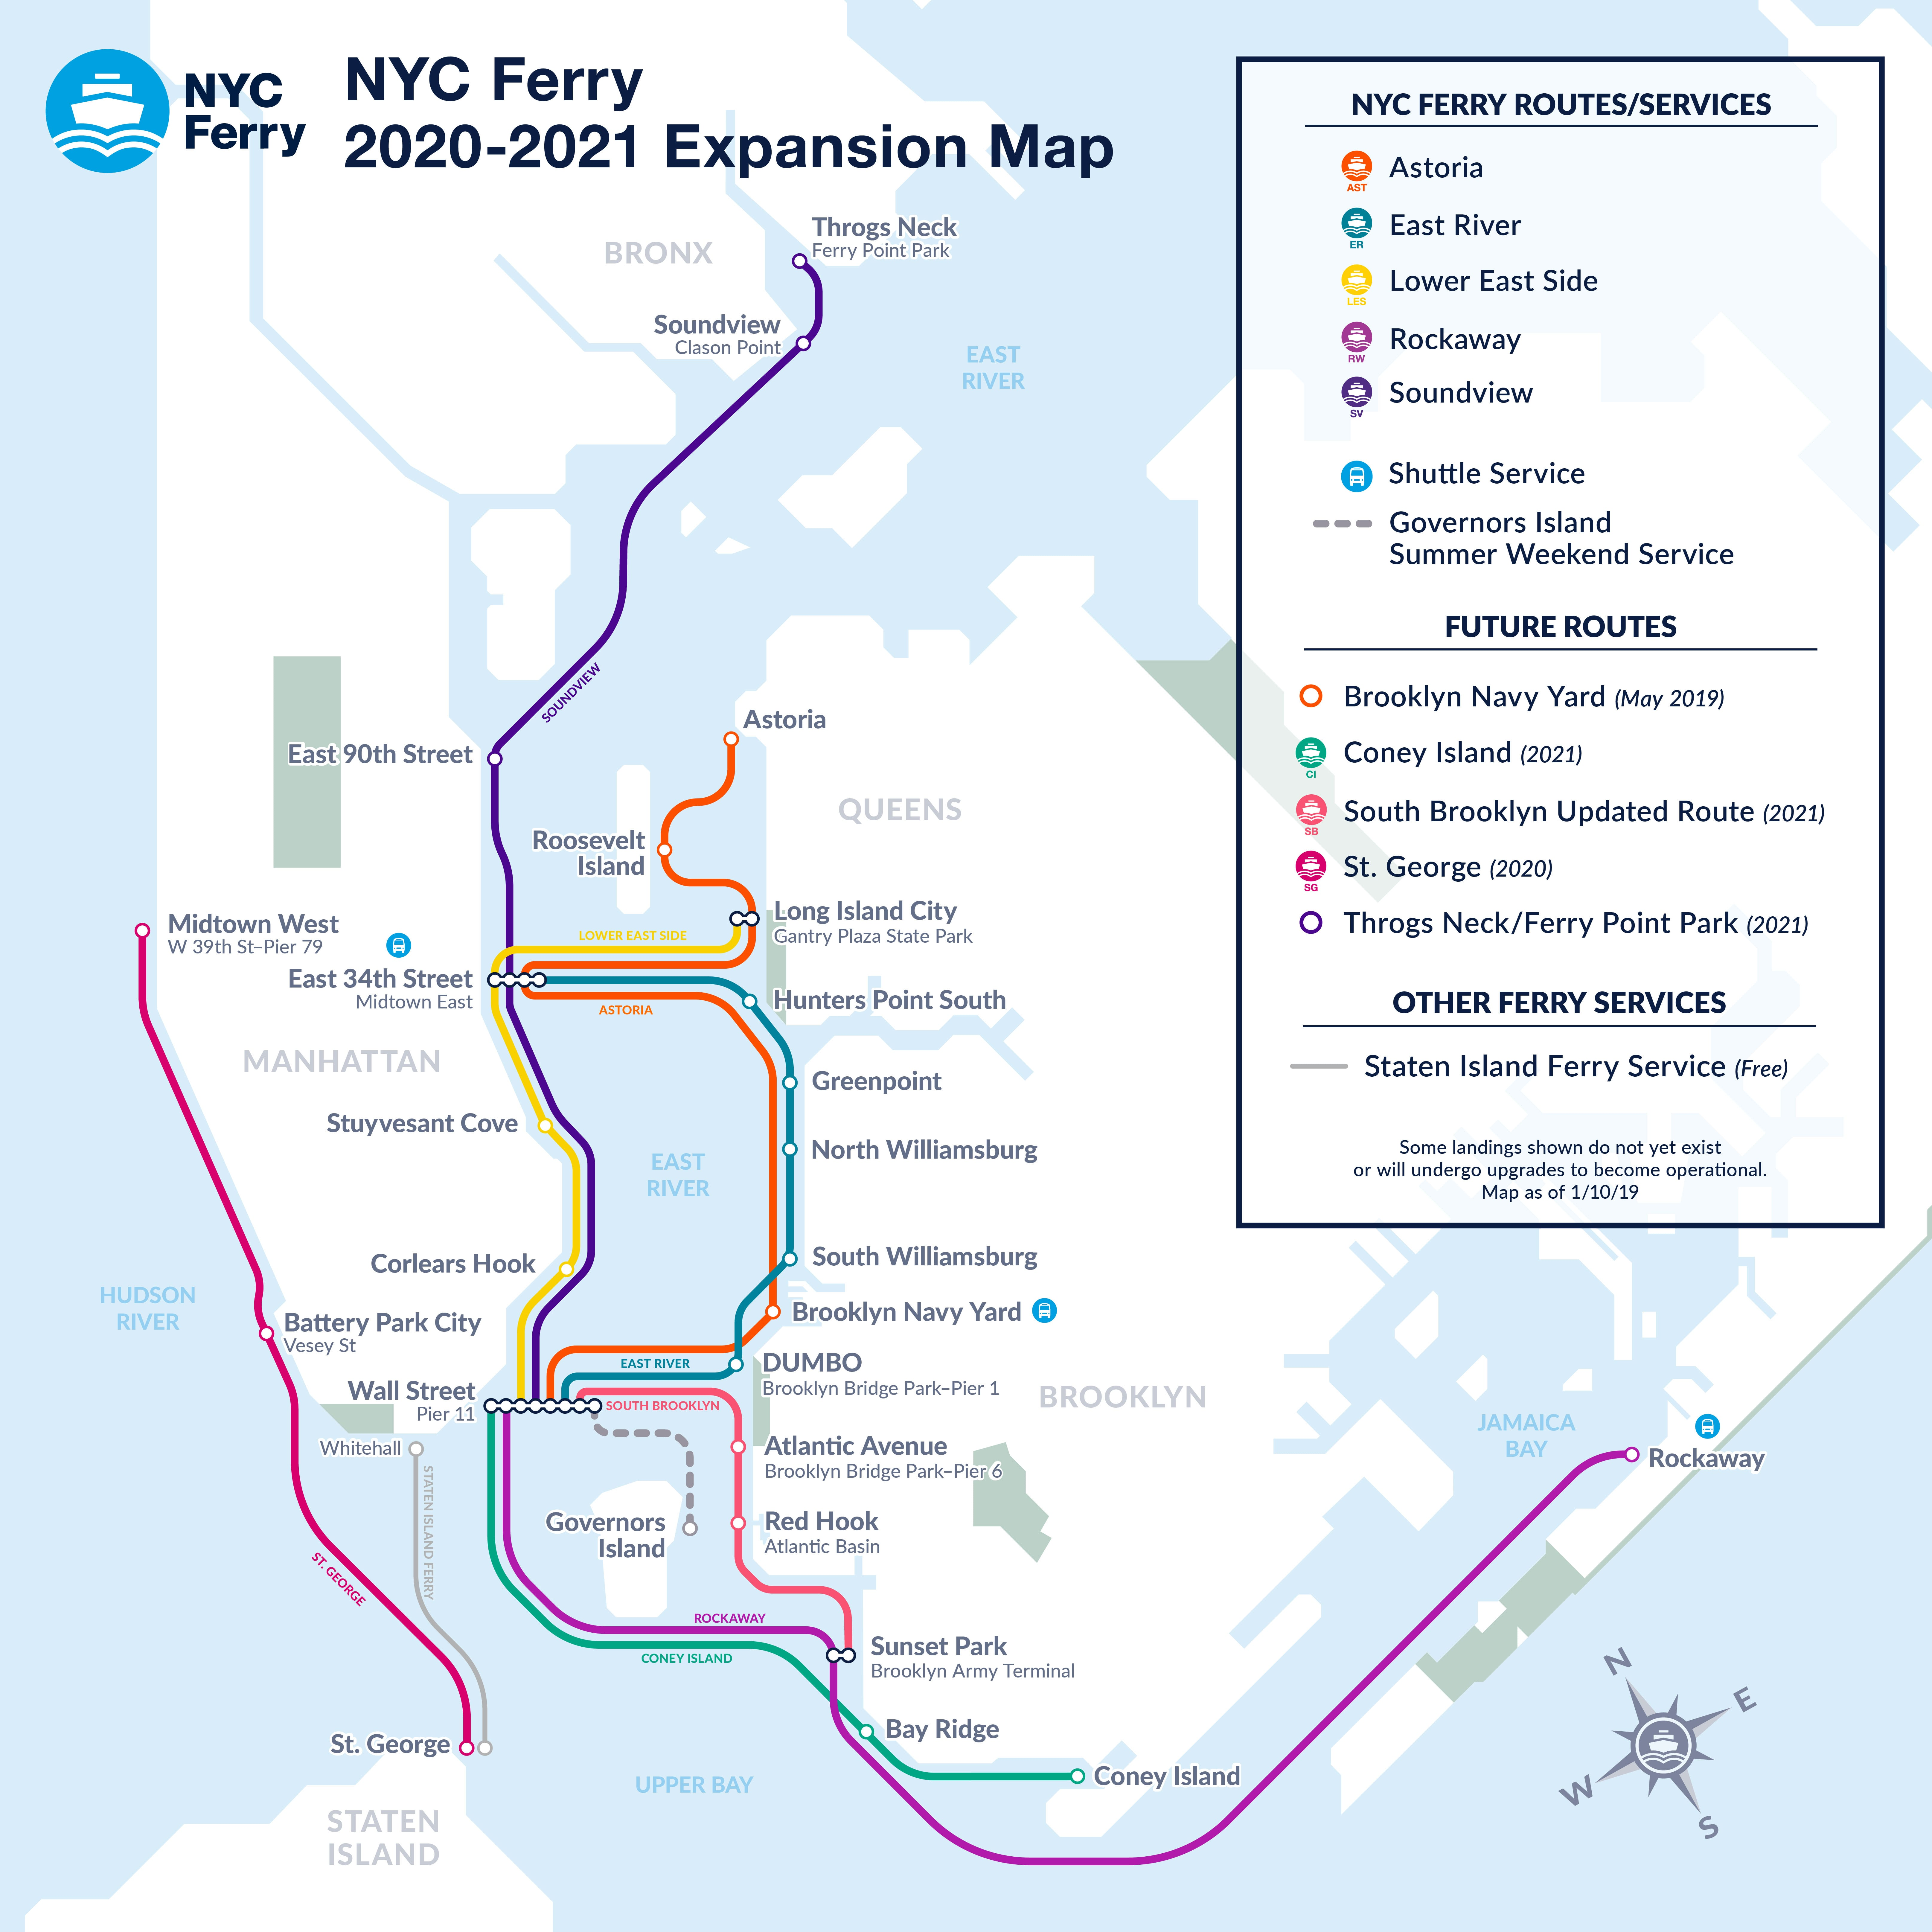 NYC Ferry Expansion Map End of 2021 - New York City Ferry ...